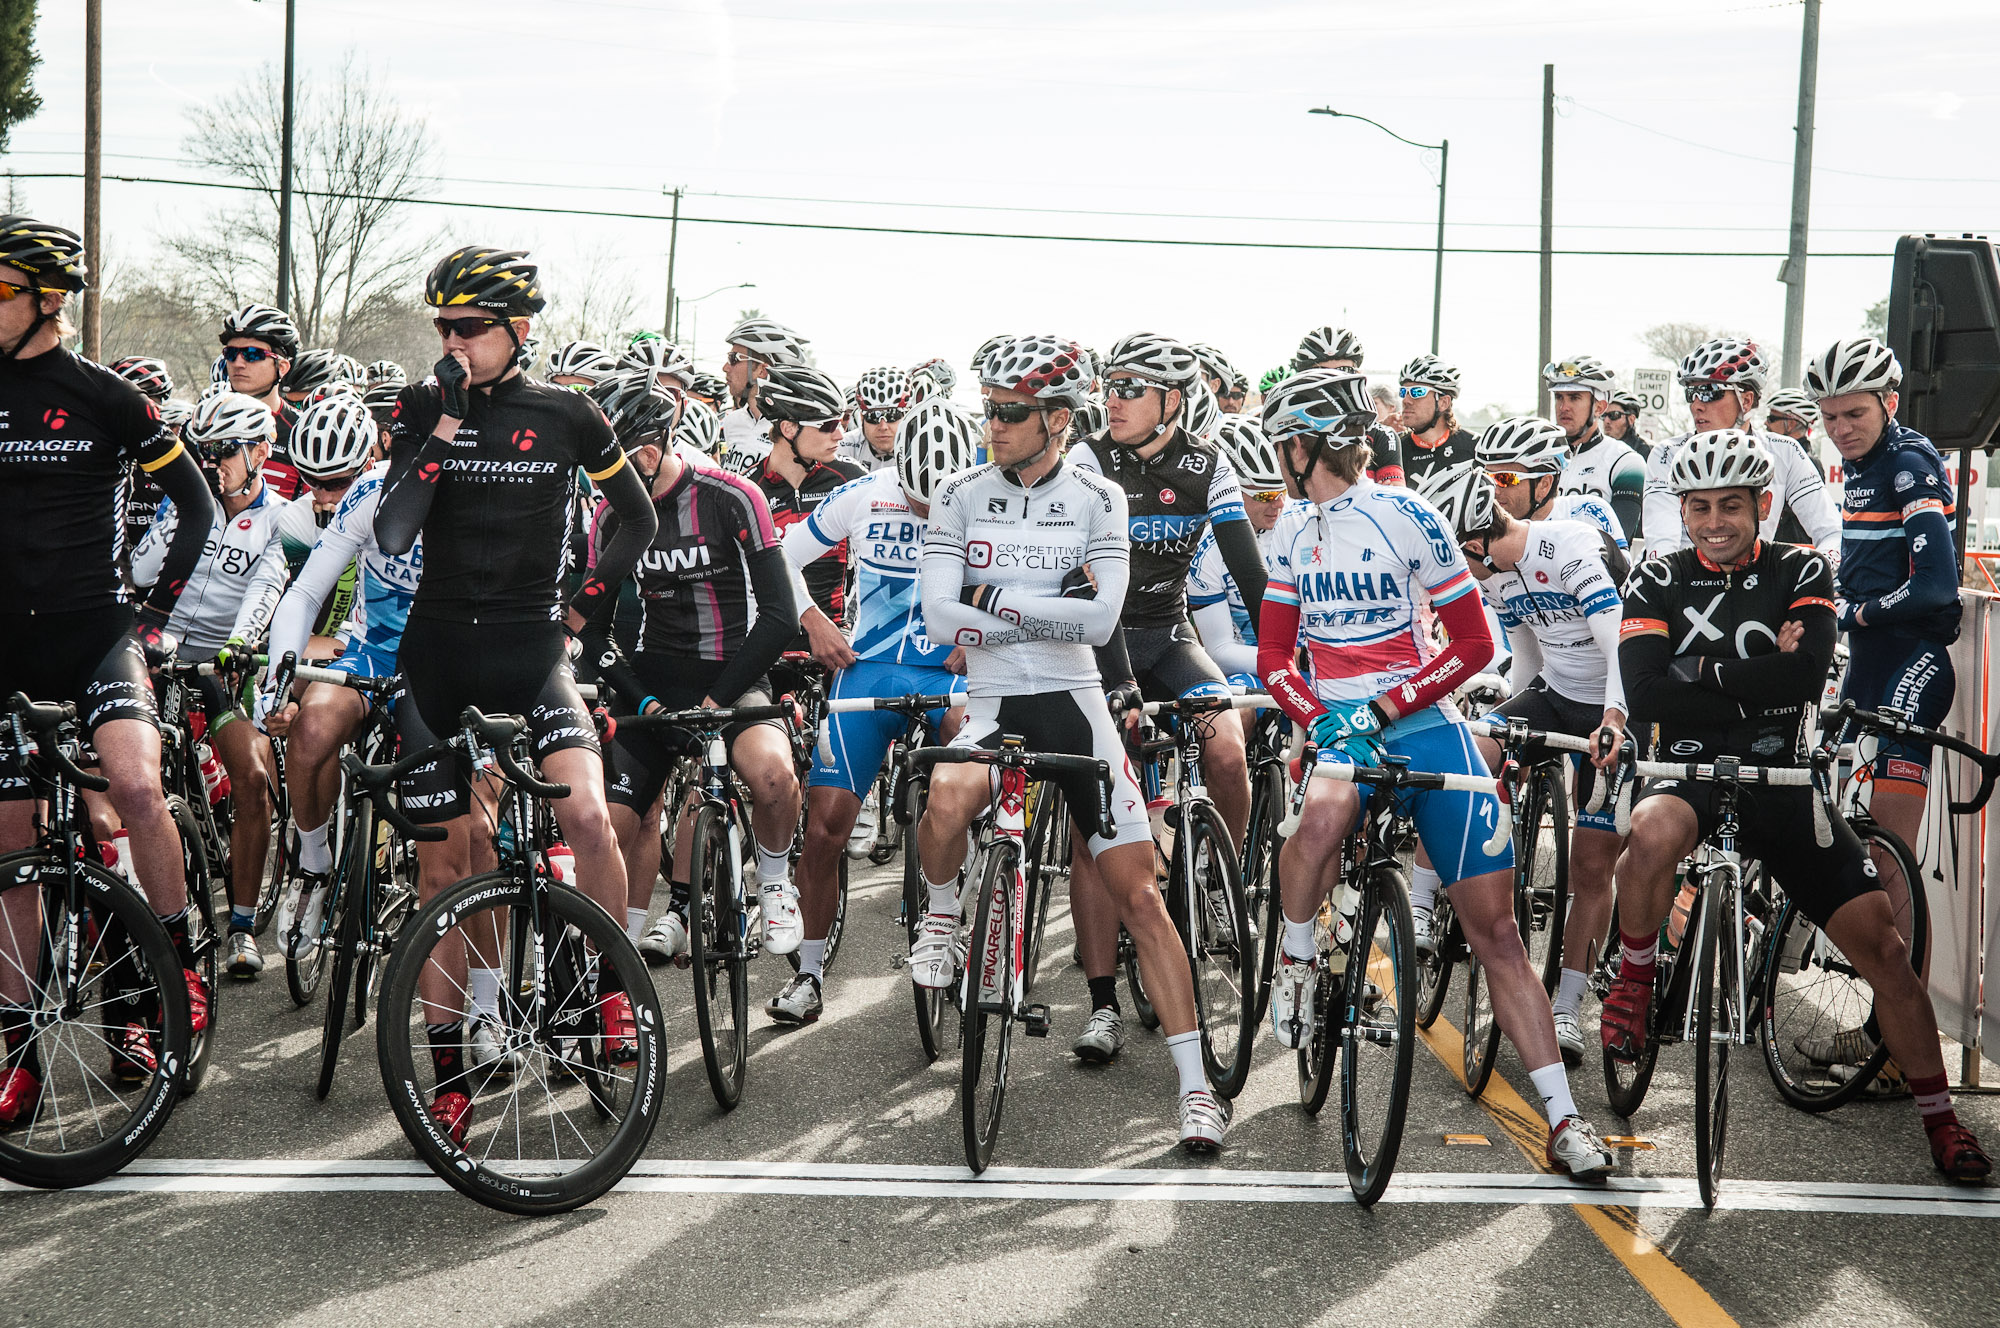 At the starting line for Stage 1: City of Beaumont Circuit Road Race. Photo: Tommy Chandler/Competitive Cyclist.